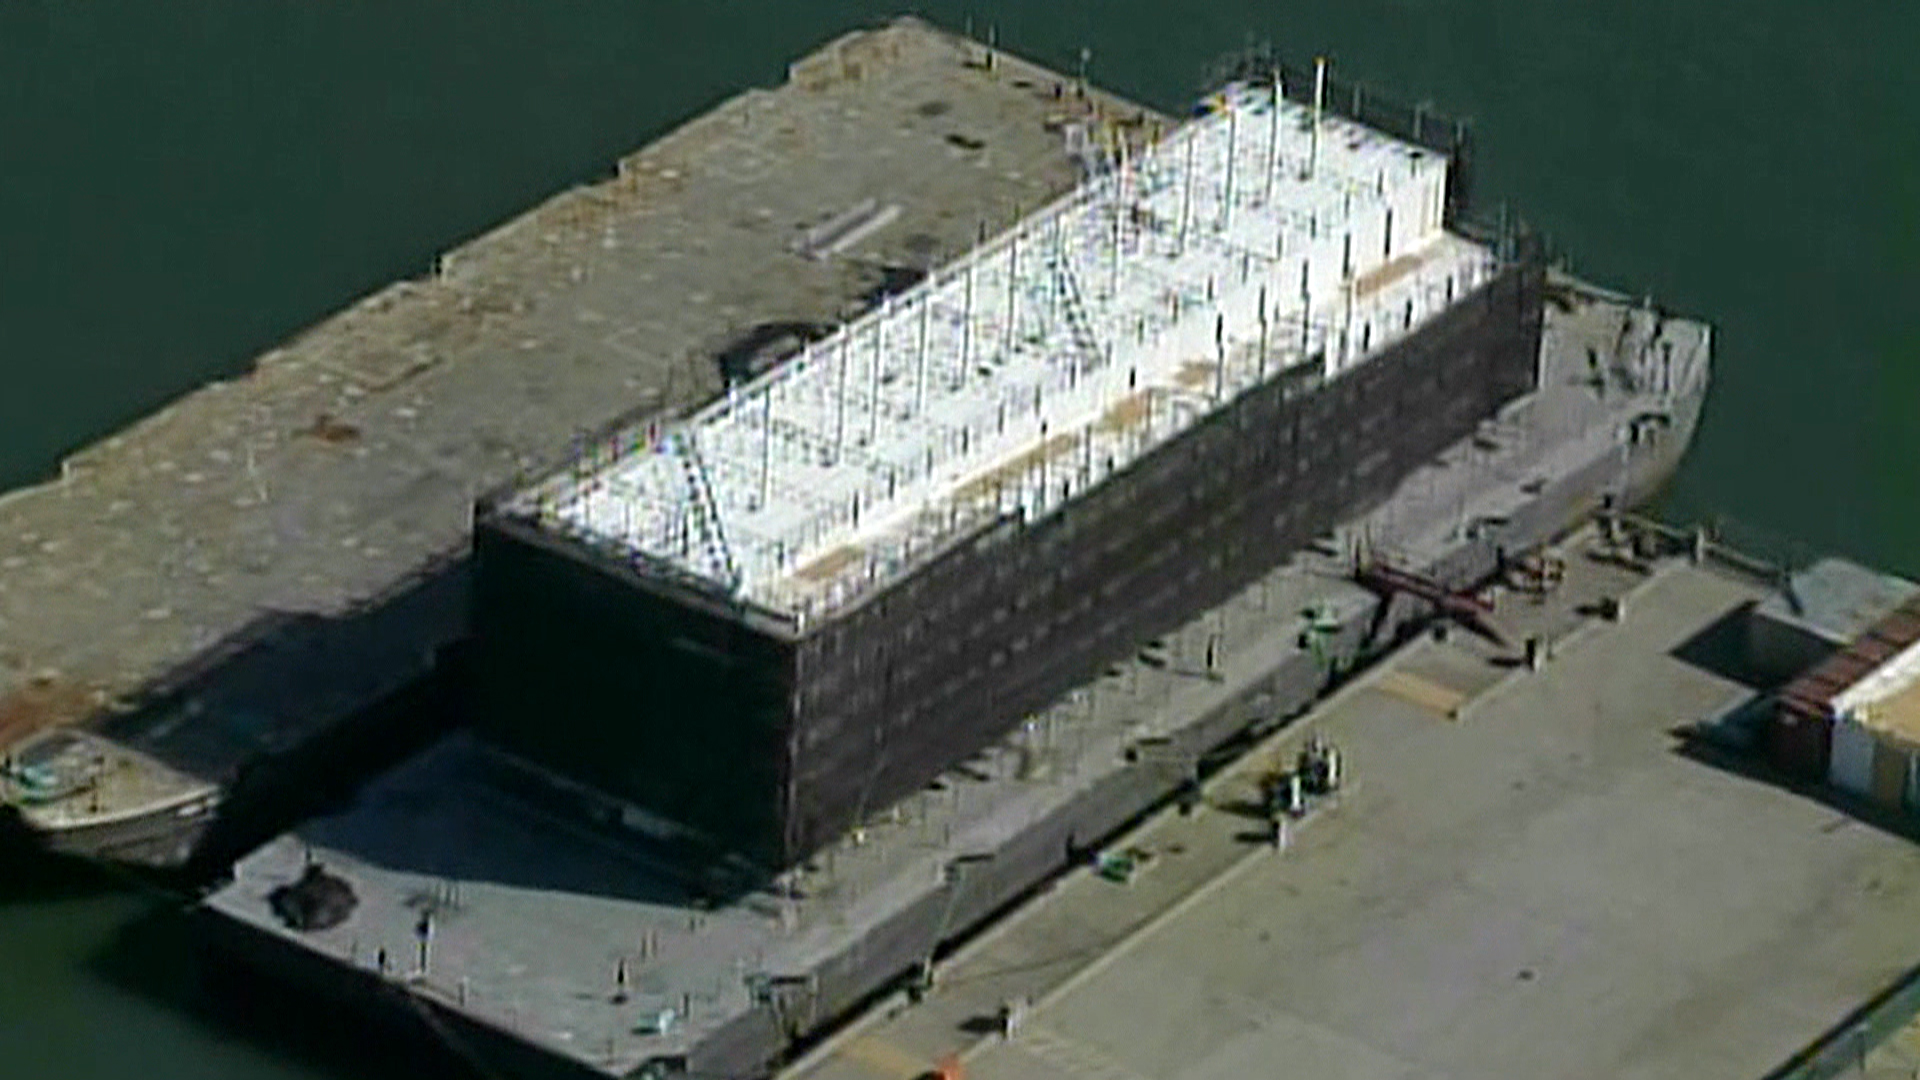 A strange barge has appeared off San Francisco's Treasure Island that is attracting attention. Coast Guard officials confirm it is associated with Google, but the tech giant isn't commenting on what it may be doing there. CNBC's Josh Lipton reports.